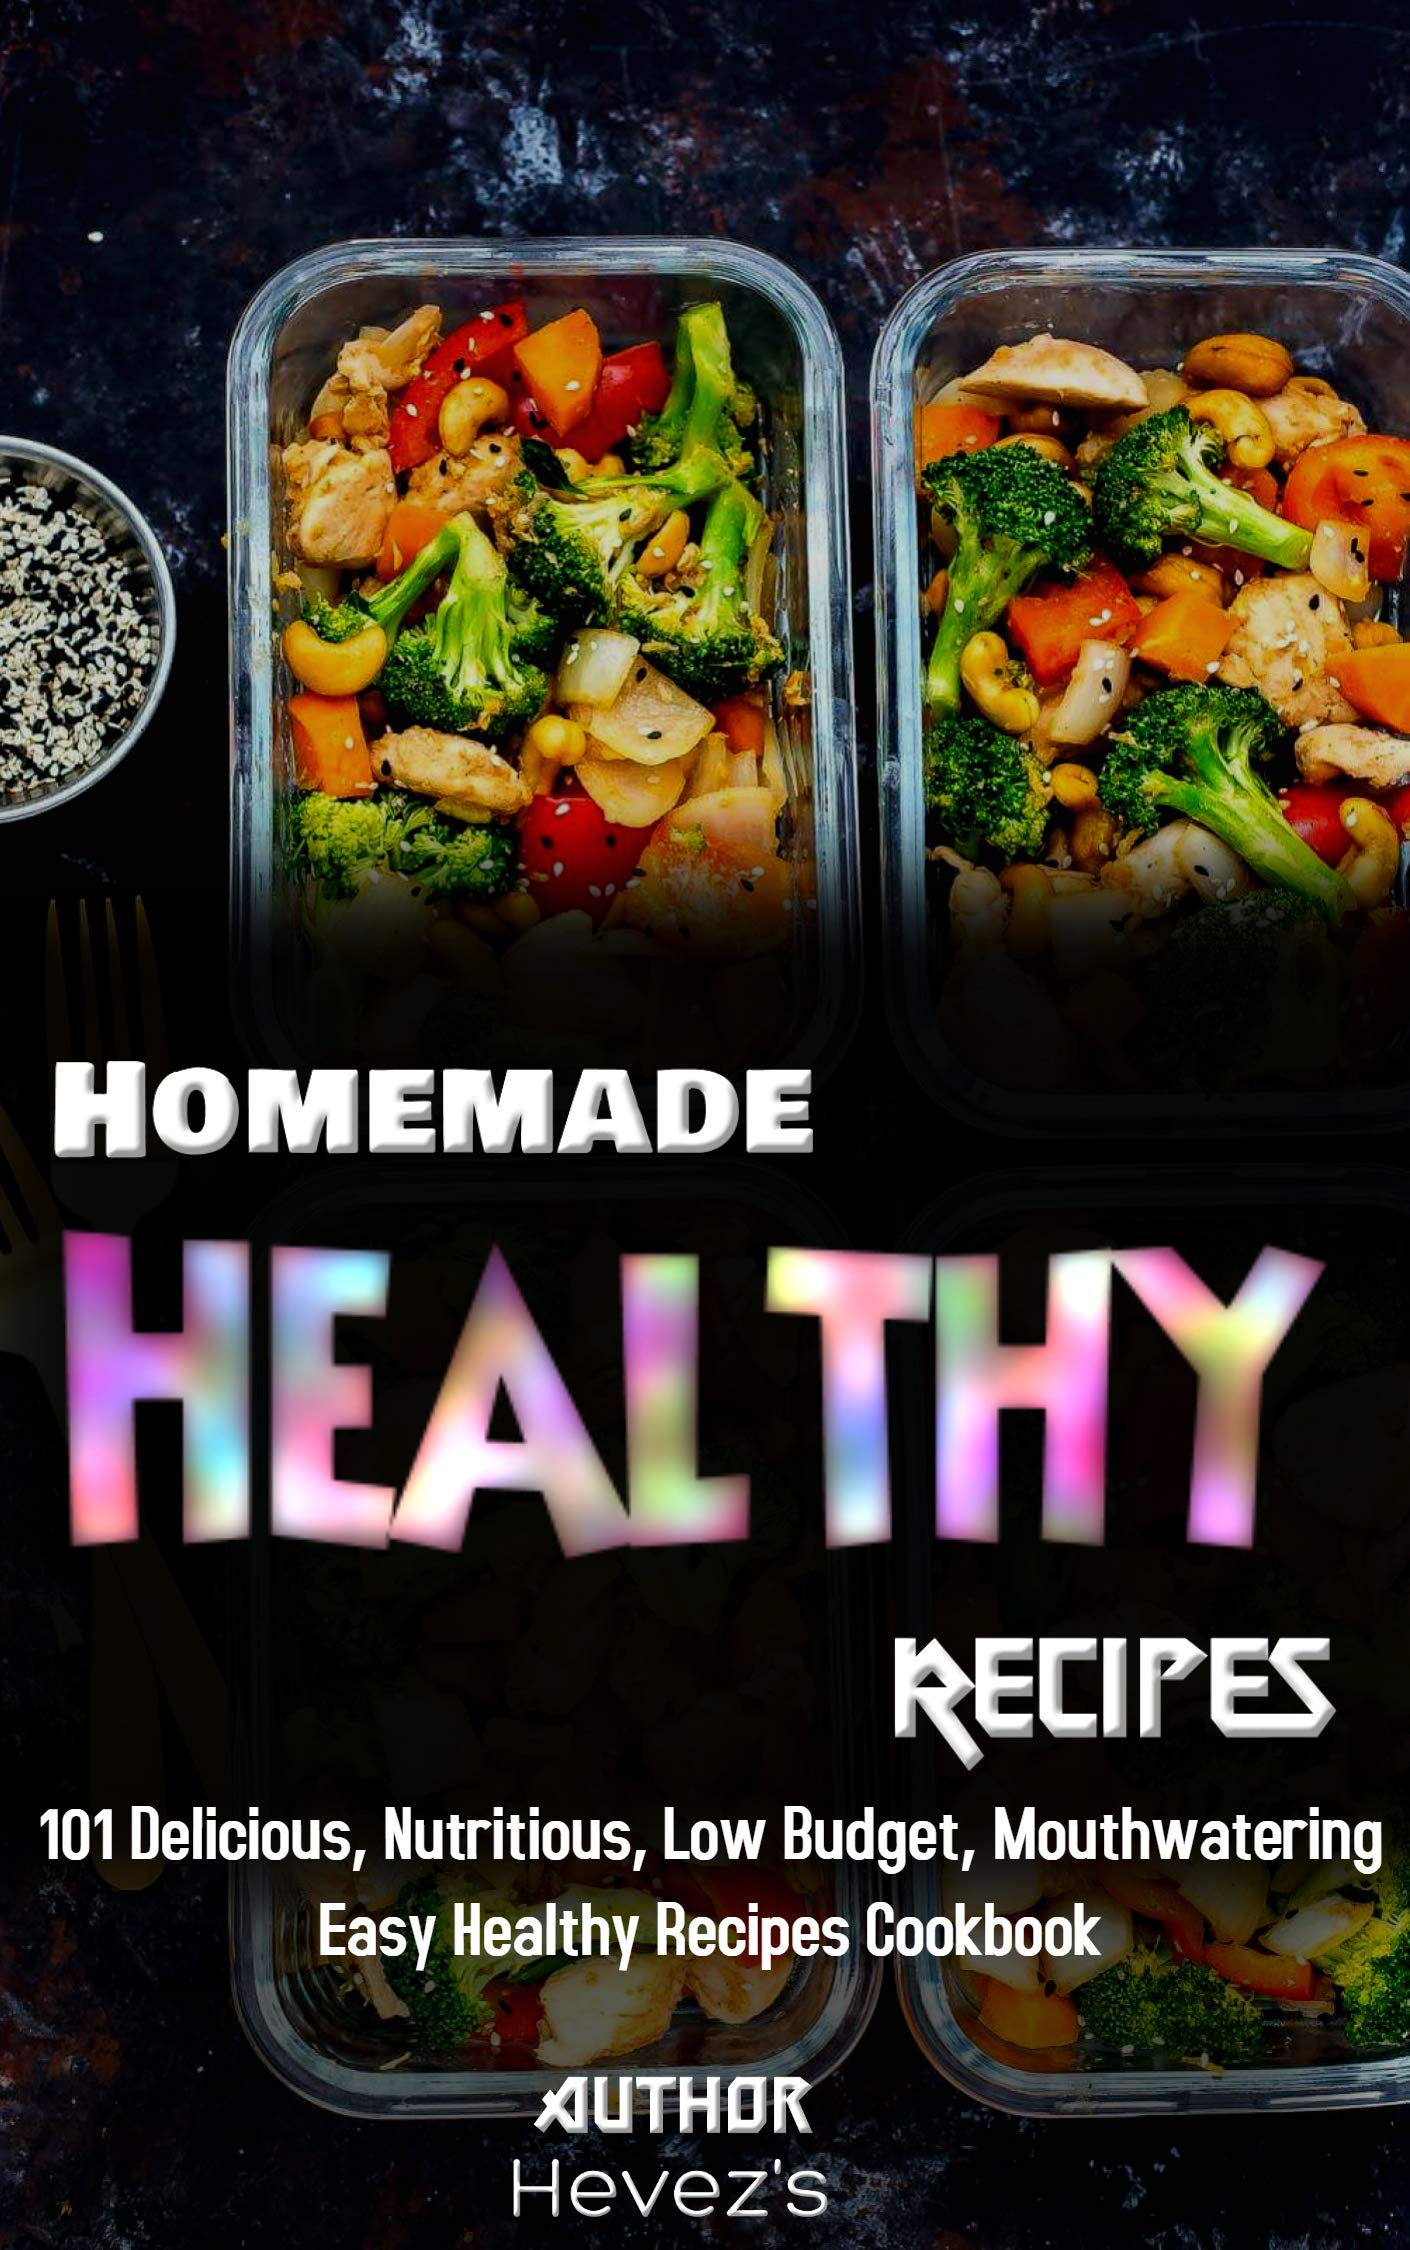 Image OfHomemade Healthy Recipes: 101 Delicious, Nutritious, Low Budget, Mouthwatering Easy Healthy Recipes Cookbook (English Edit...